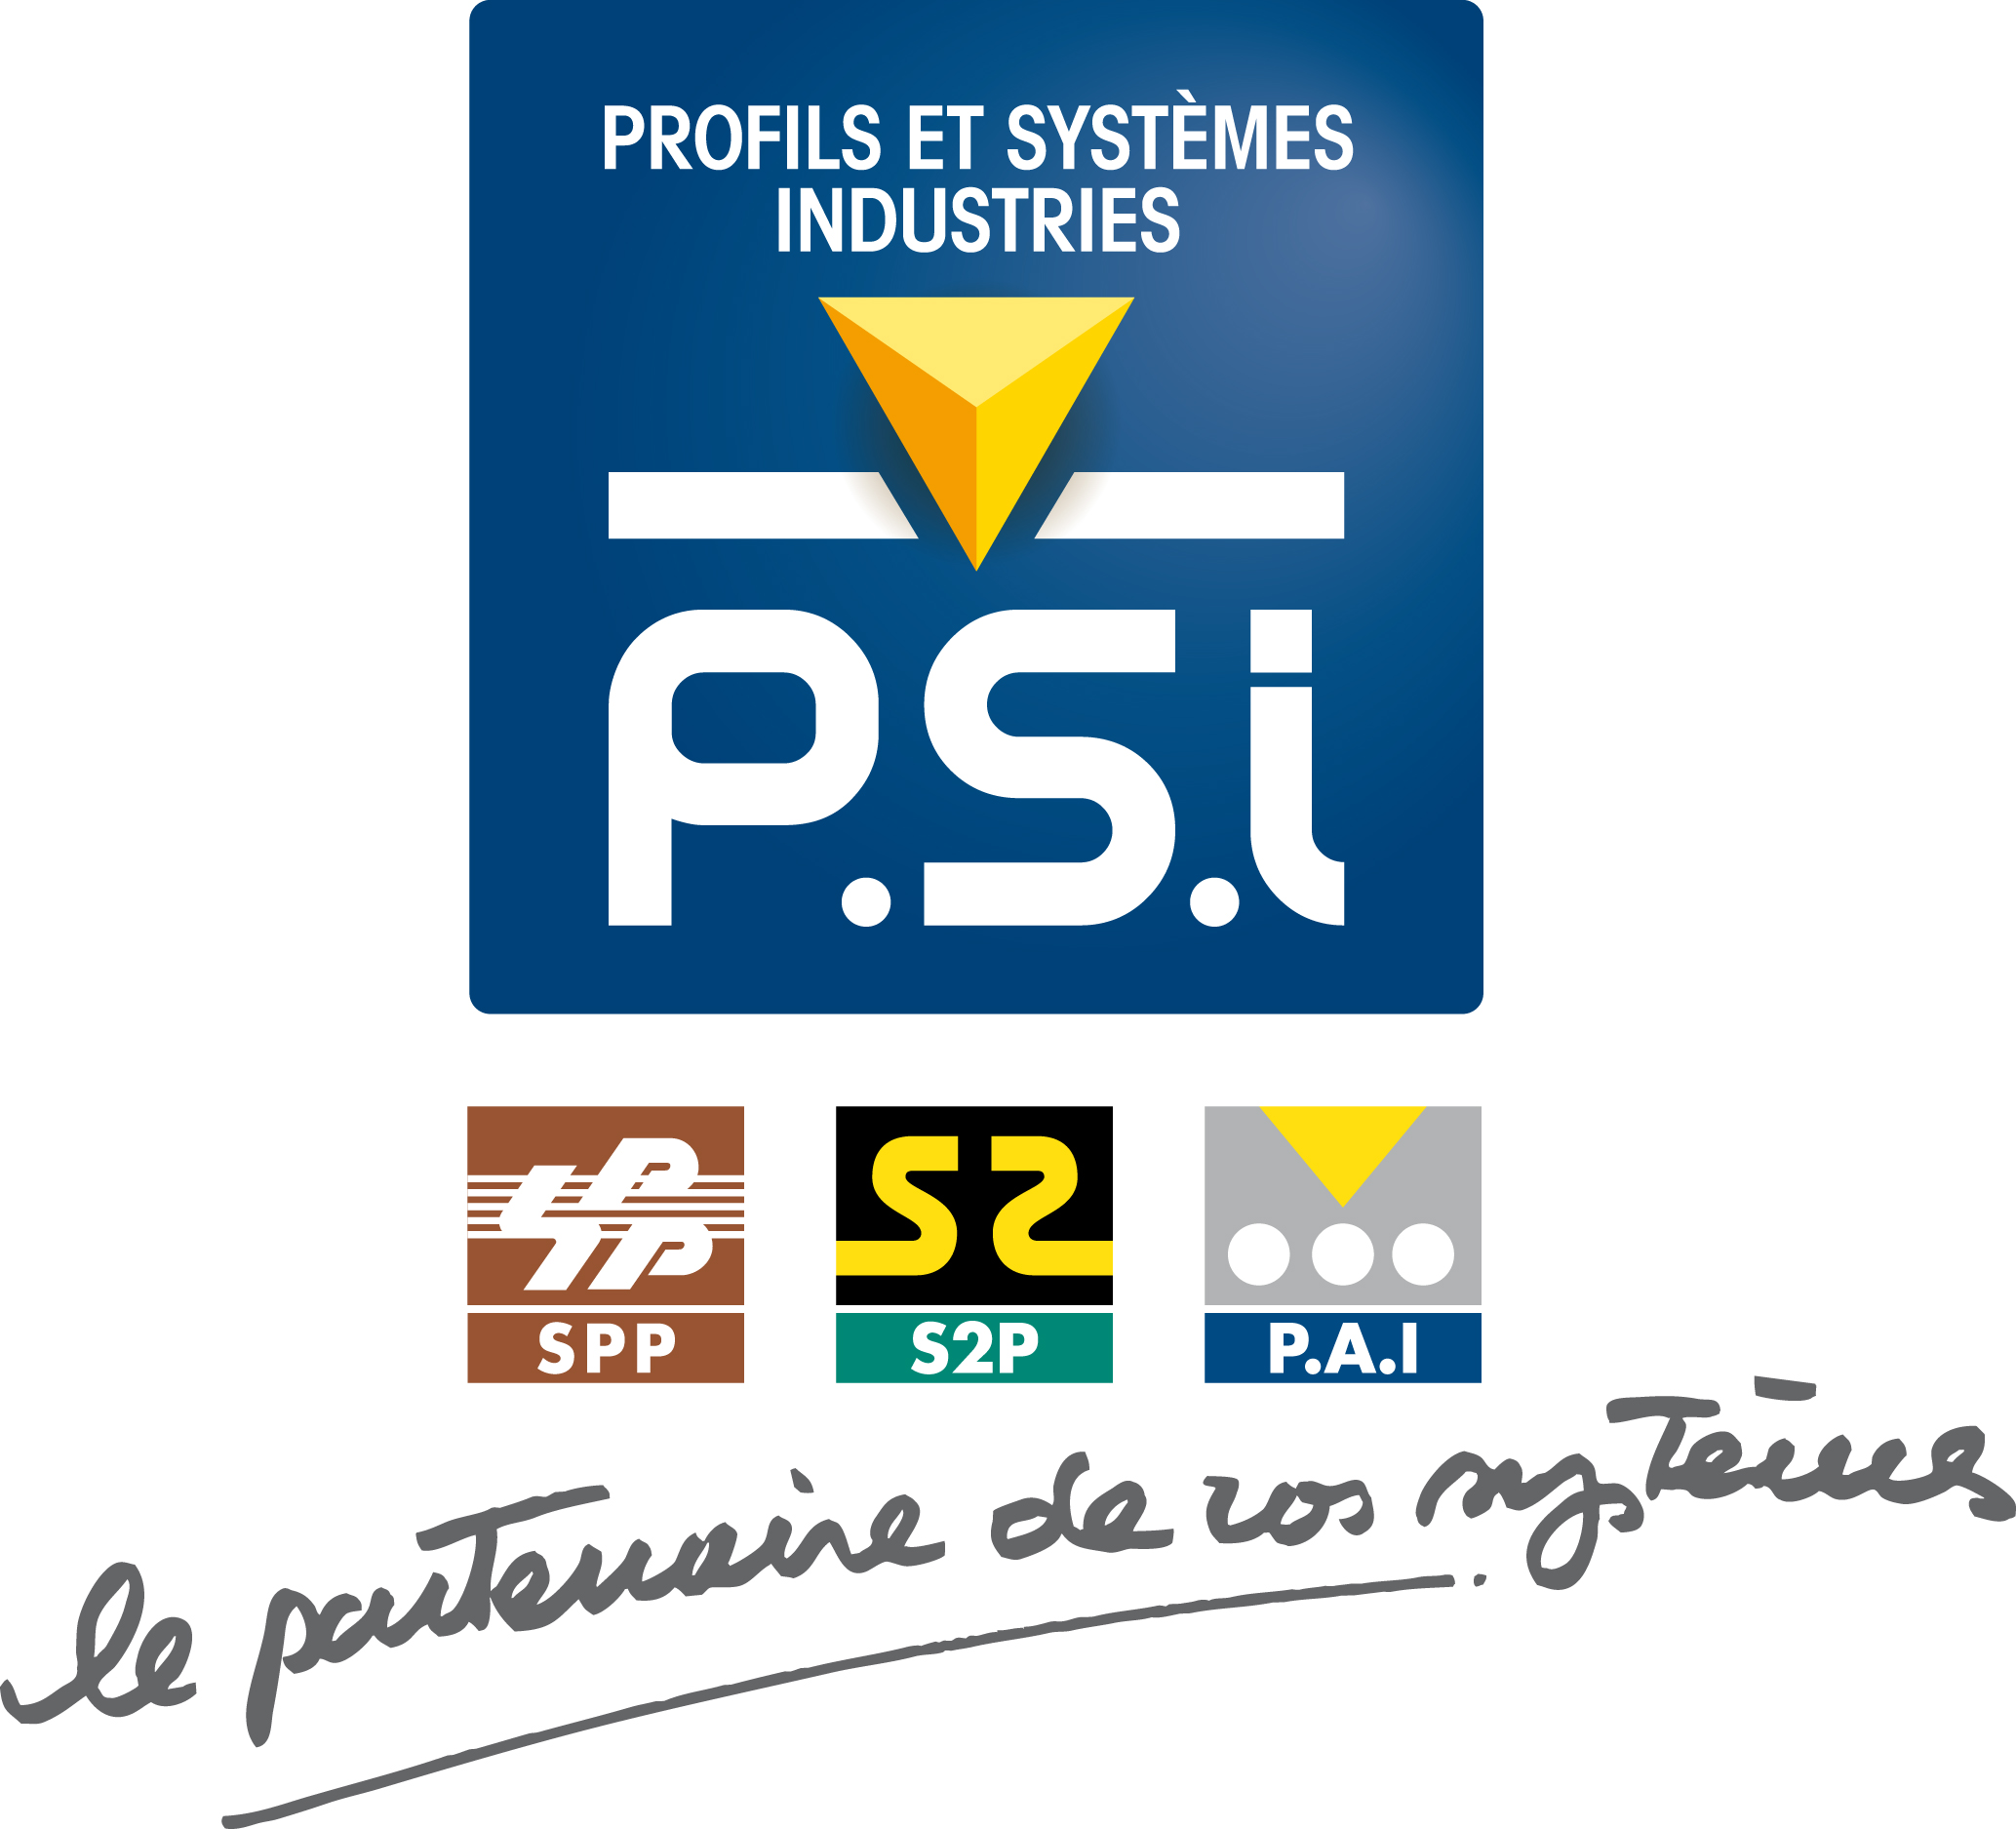 Psi profils et syst mes industries mikit - Profils systemes baillargues ...